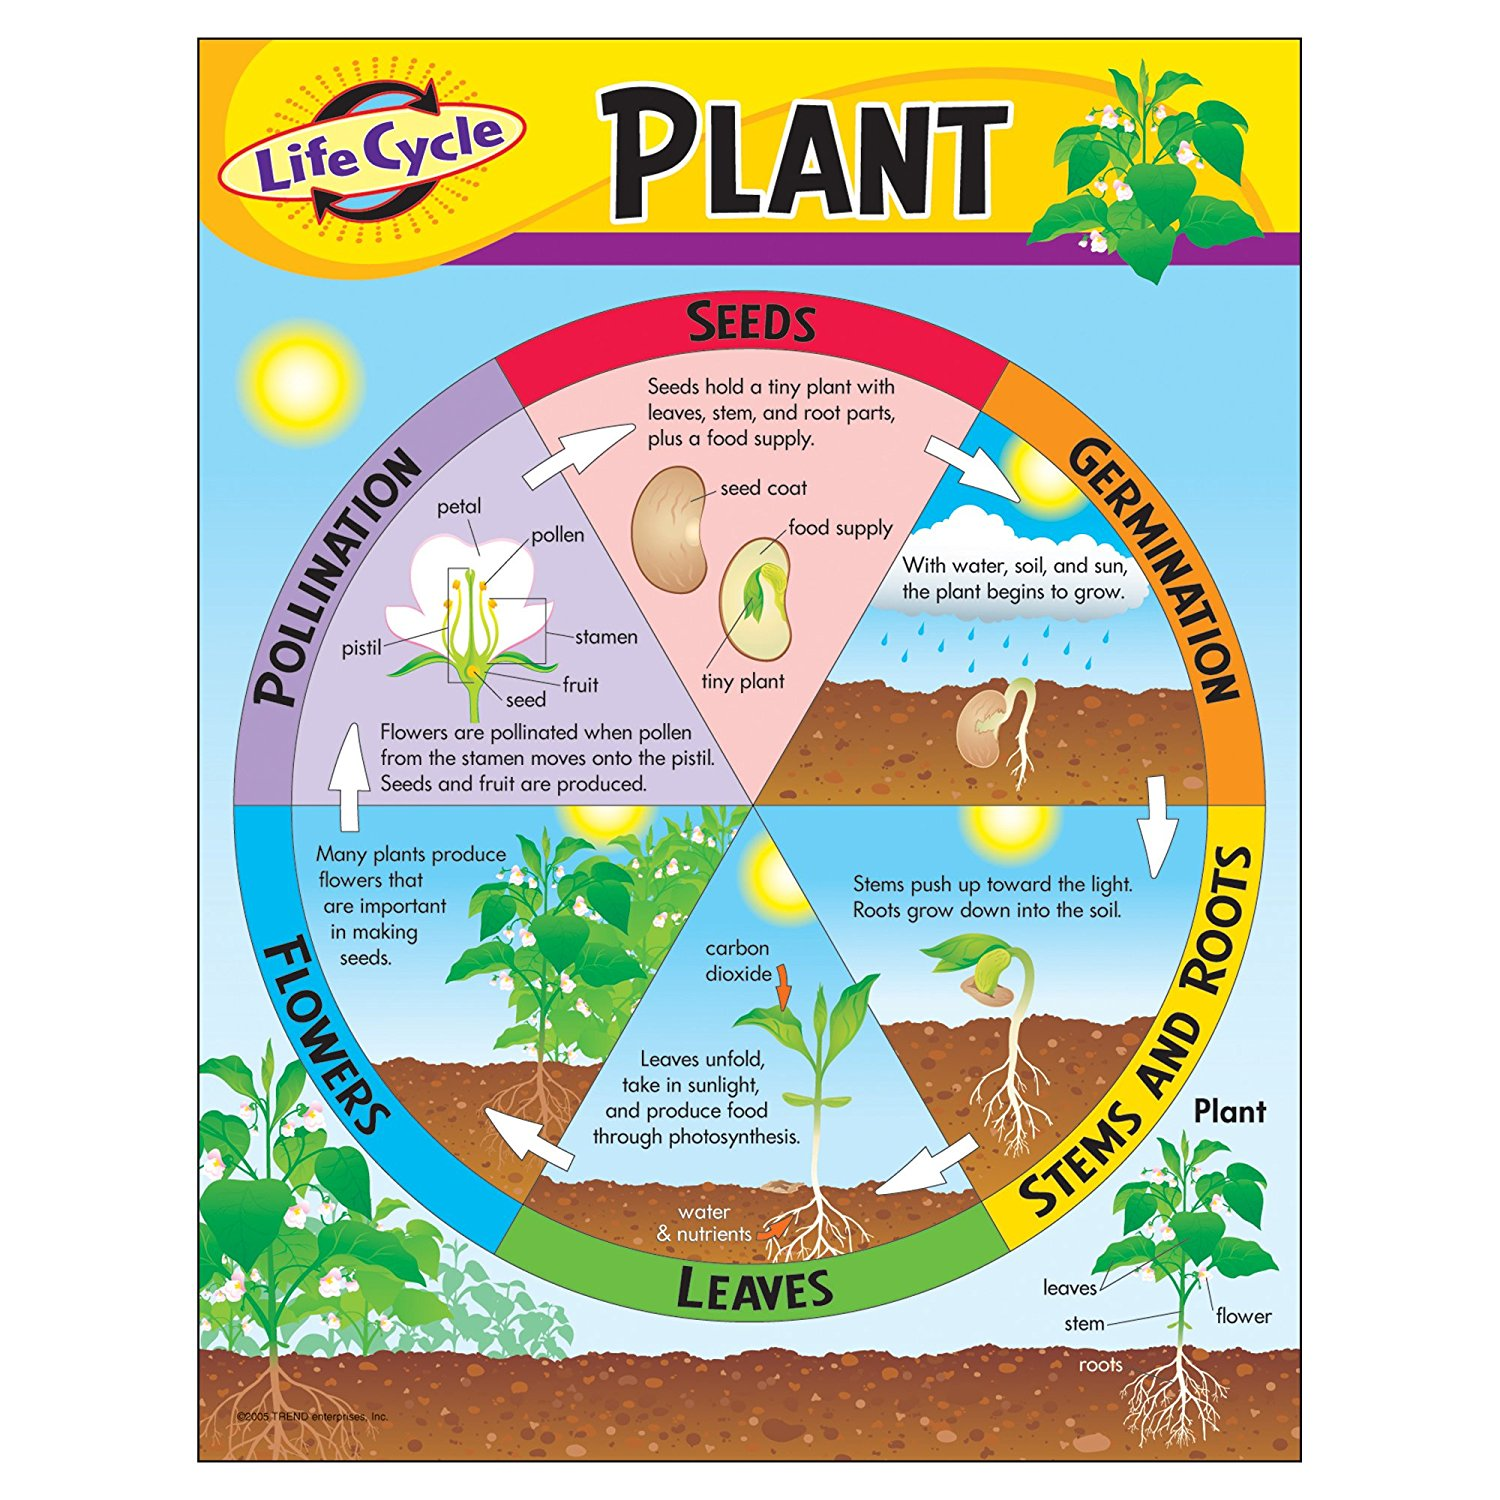 Plant Life Cycle (Term Paper) - Forestrypedia